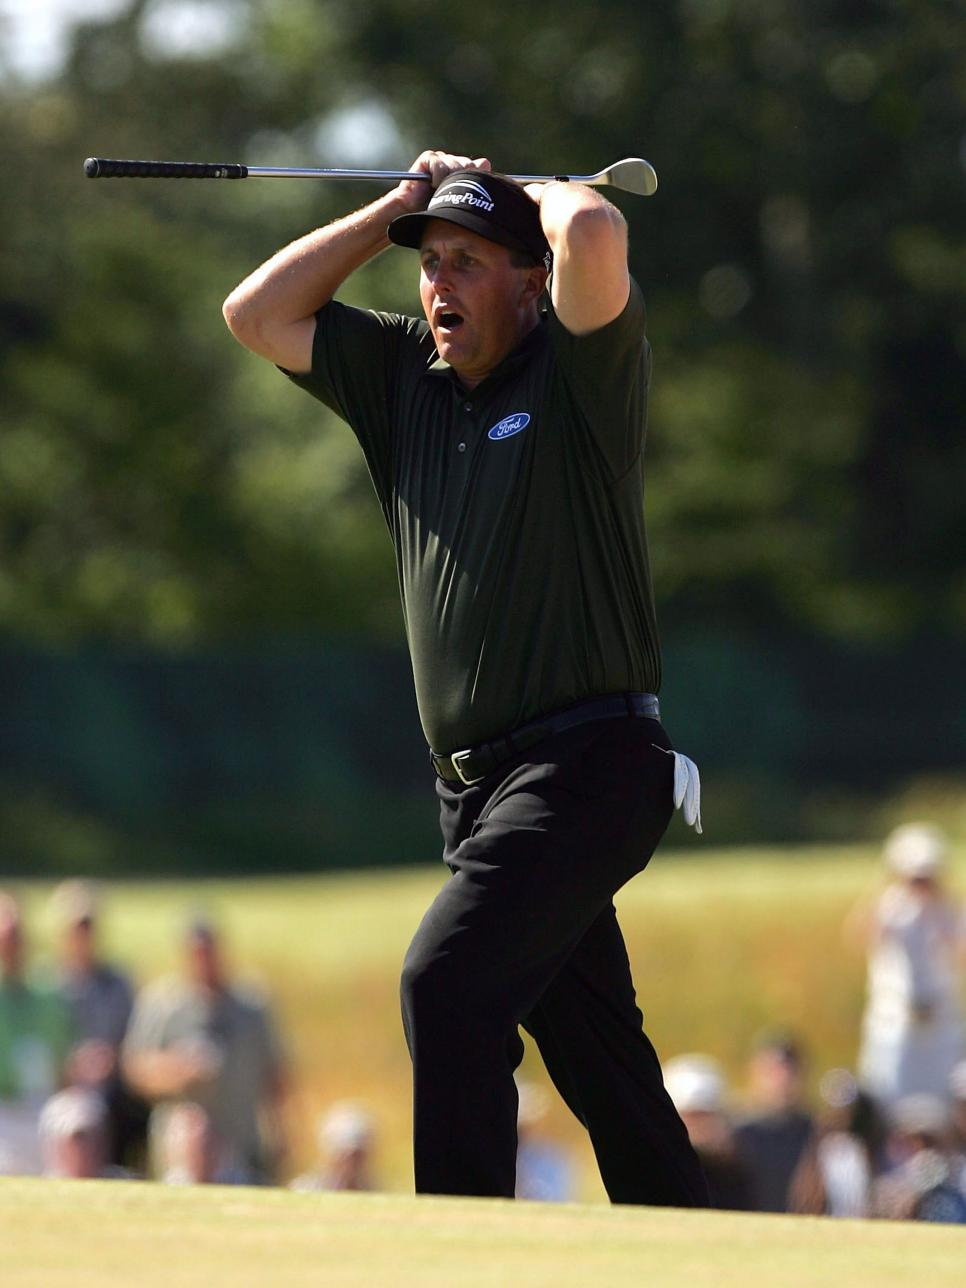 phil-mickelson-2004-us-open-sunday-7th-hole.jpg